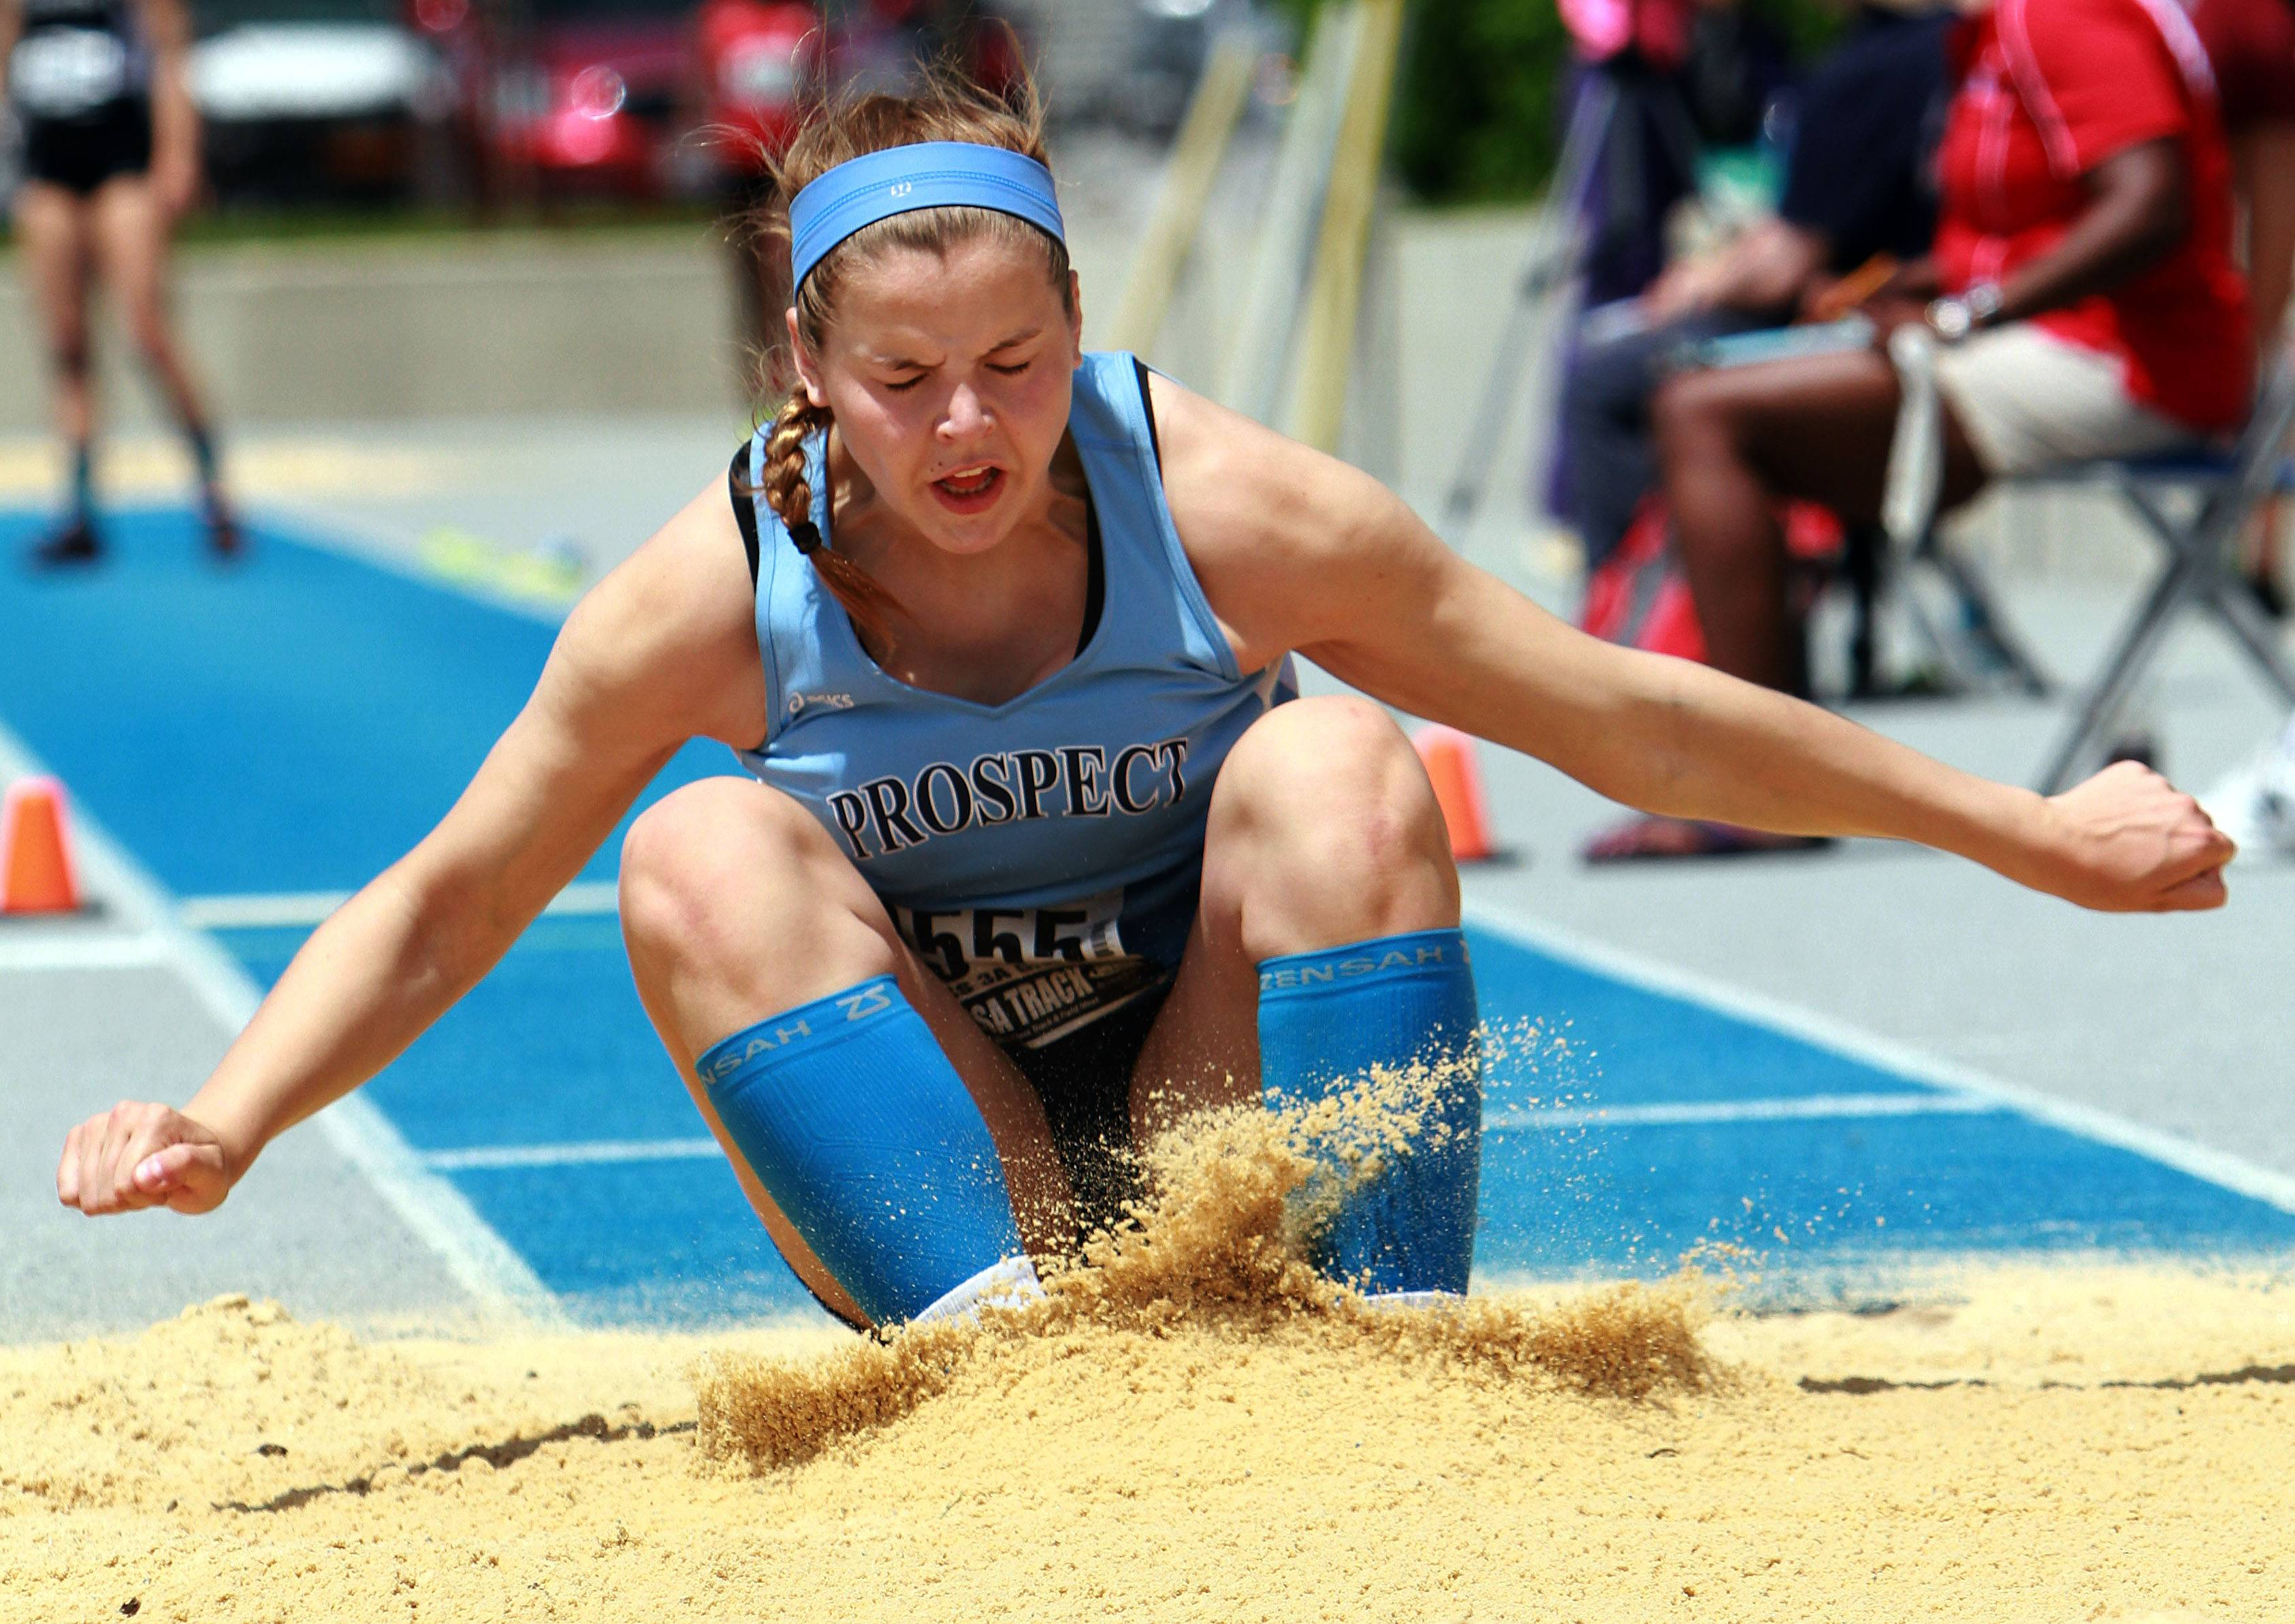 Prospect's Catherine Sherwood competes in the triple jump during the Class 3A prelims of the girls track and field state meet at Eastern Illinois University in Charleston on Friday.